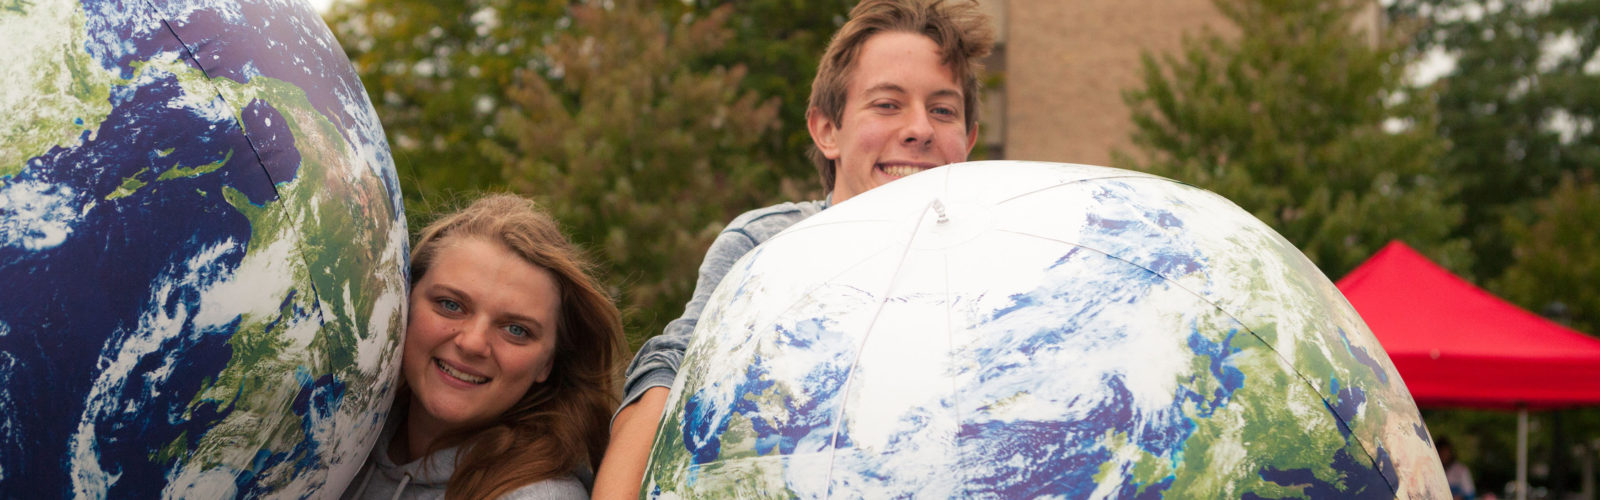 two students pose with giant inflatable earths for Sustain-a-Bash